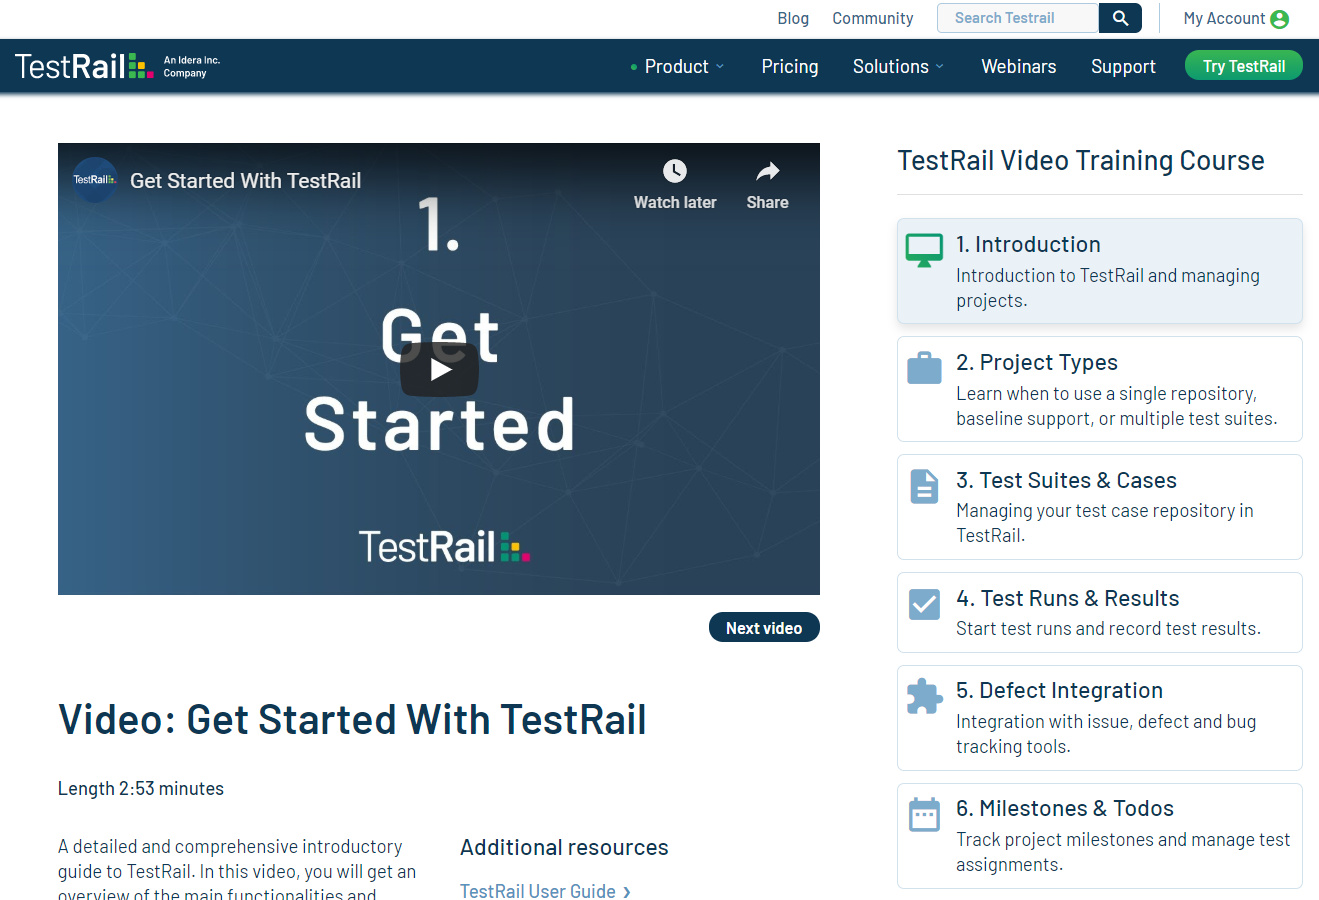 TestRail Video Training Course